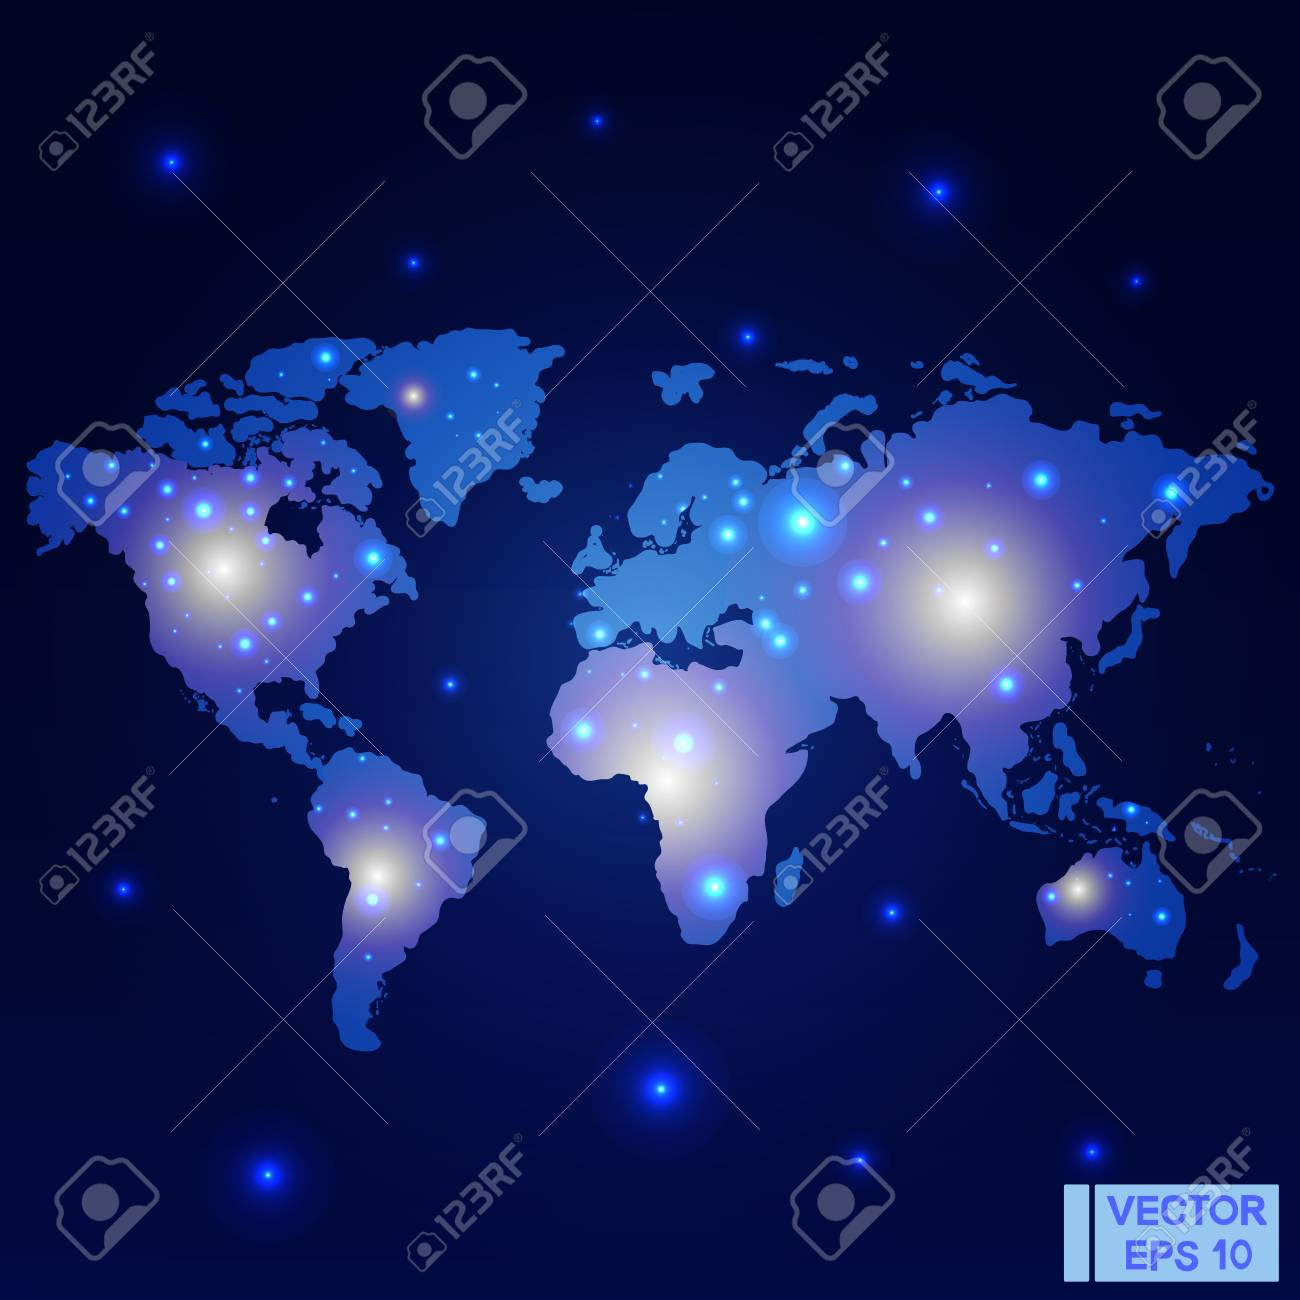 Vector image world map night lights on the map glowing marks world map night lights on the map glowing marks on a dark blue background gumiabroncs Gallery